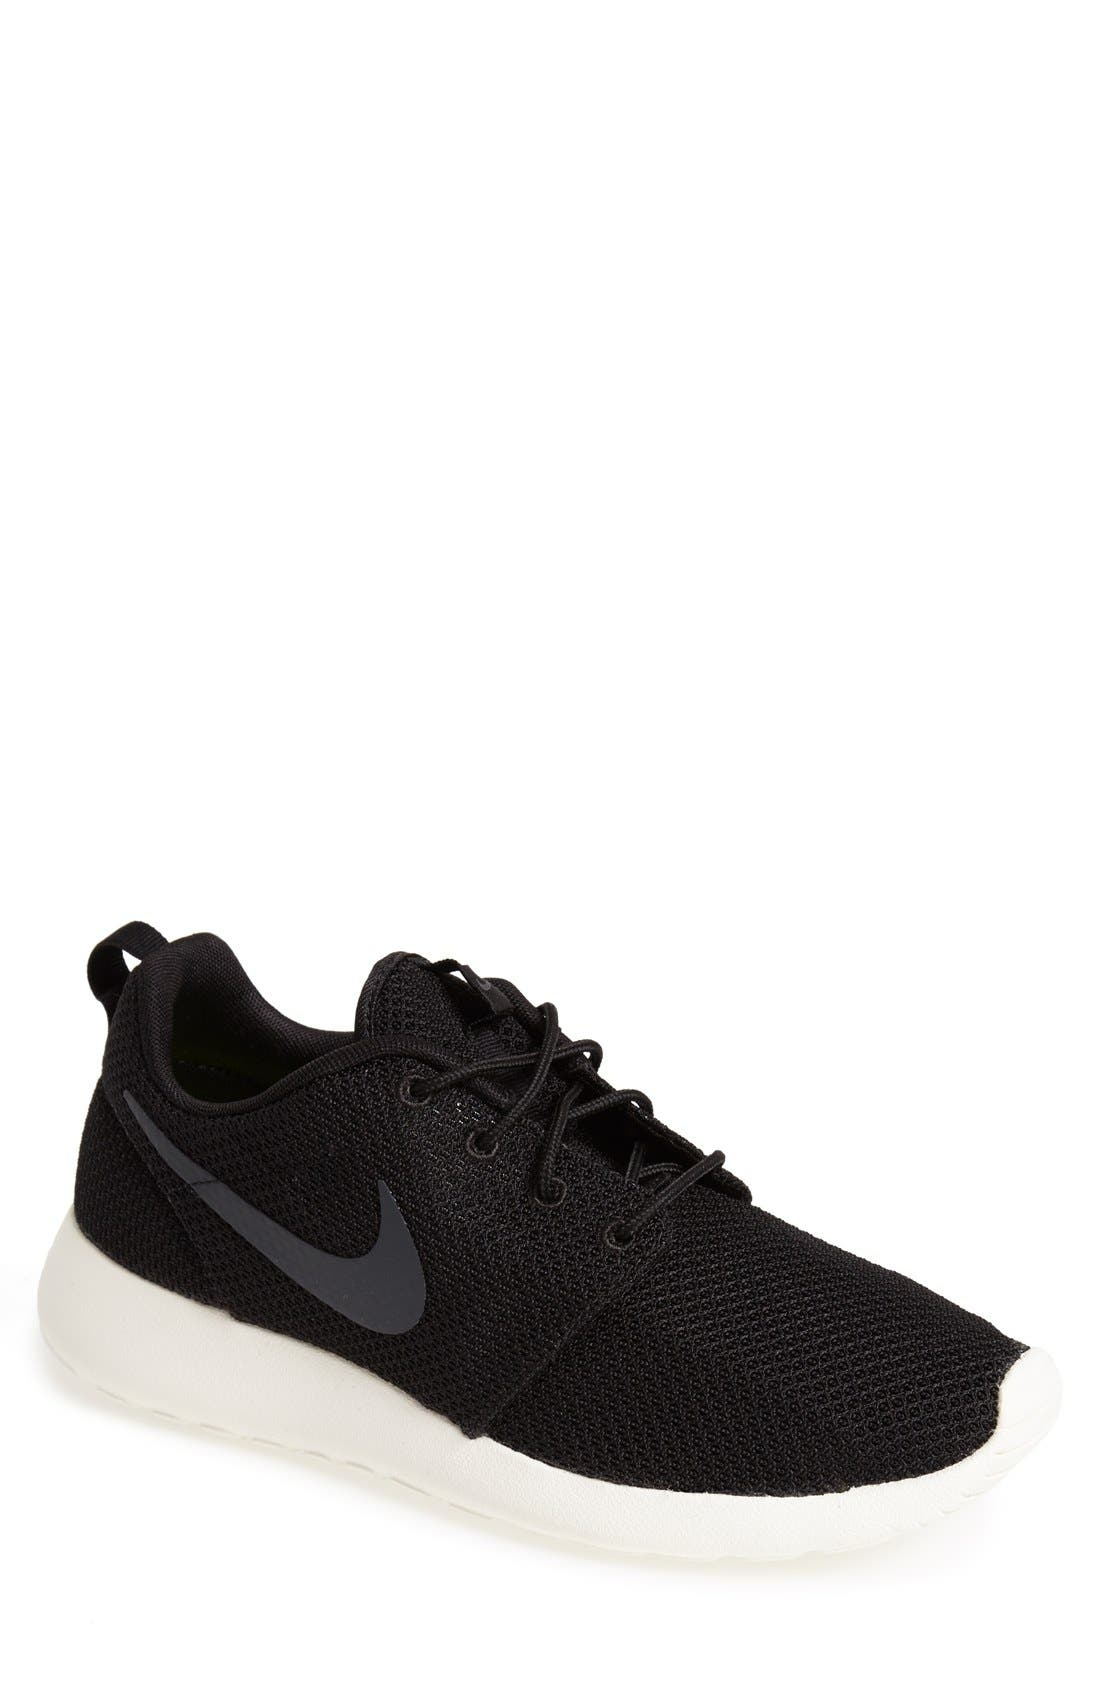 Main Image - Nike 'Roshe Run' Sneaker (Men)